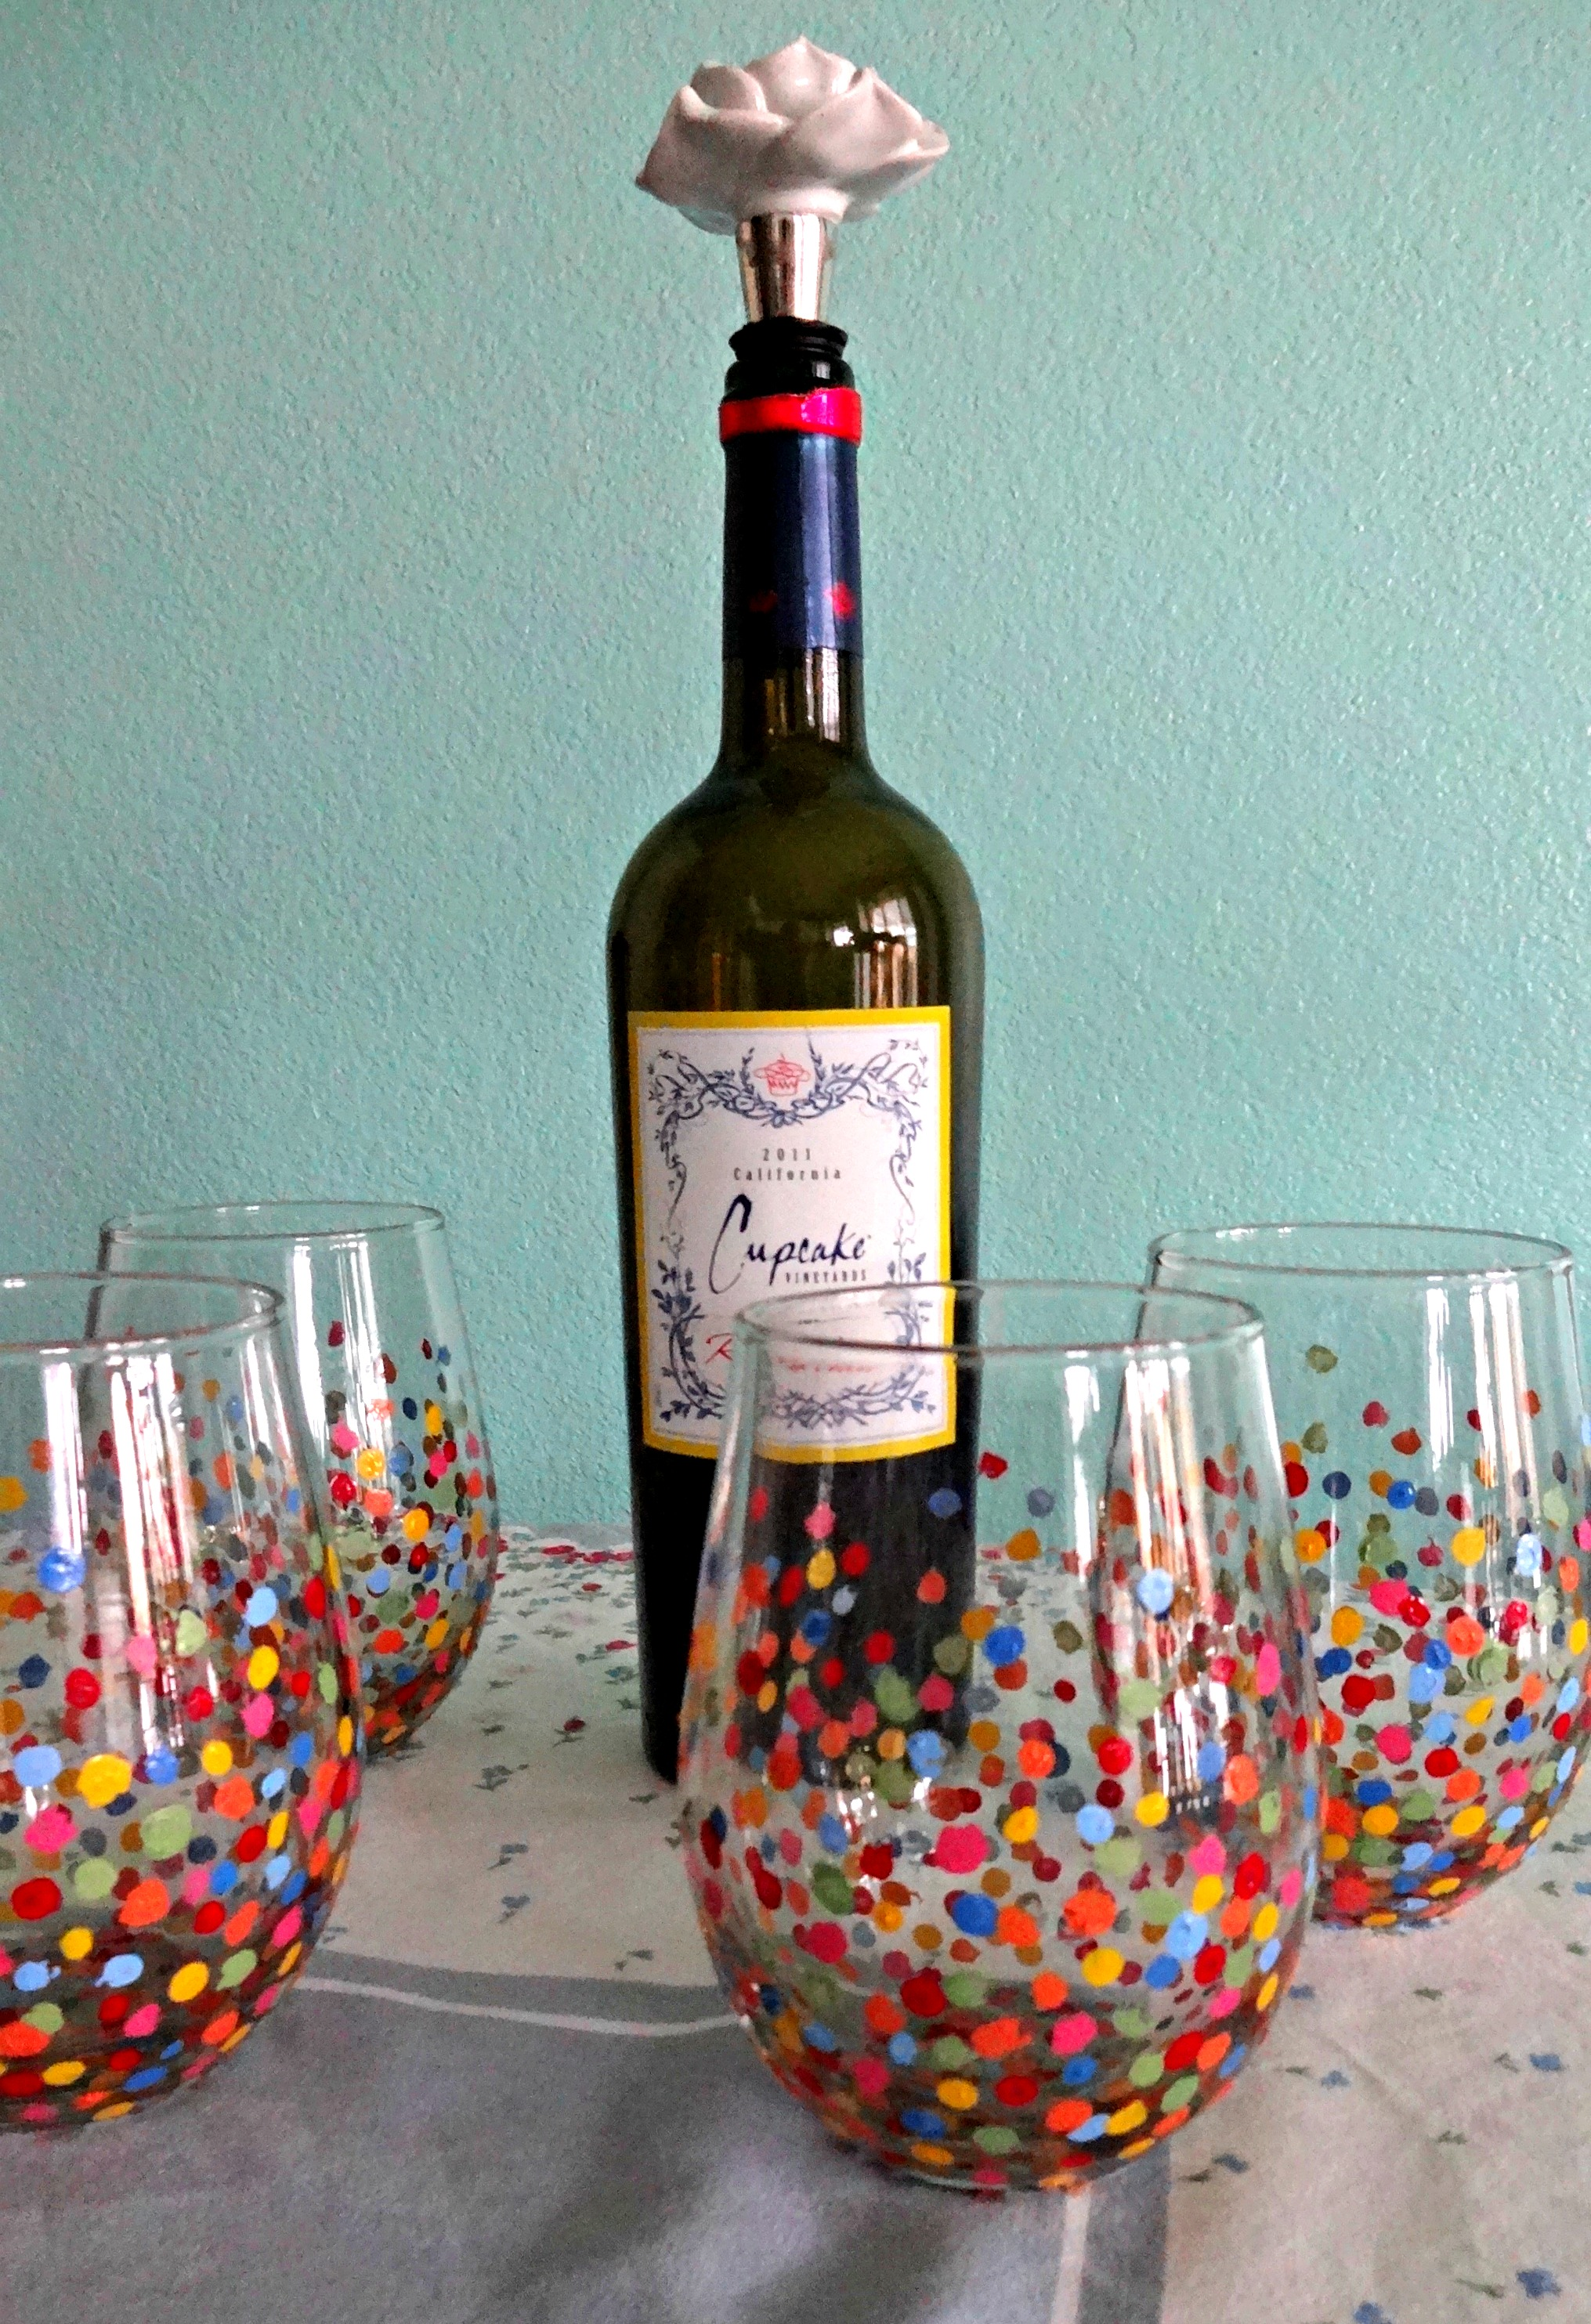 Diy painted wine glasses serendipity by sara lynn for What paint do you use to paint wine glasses